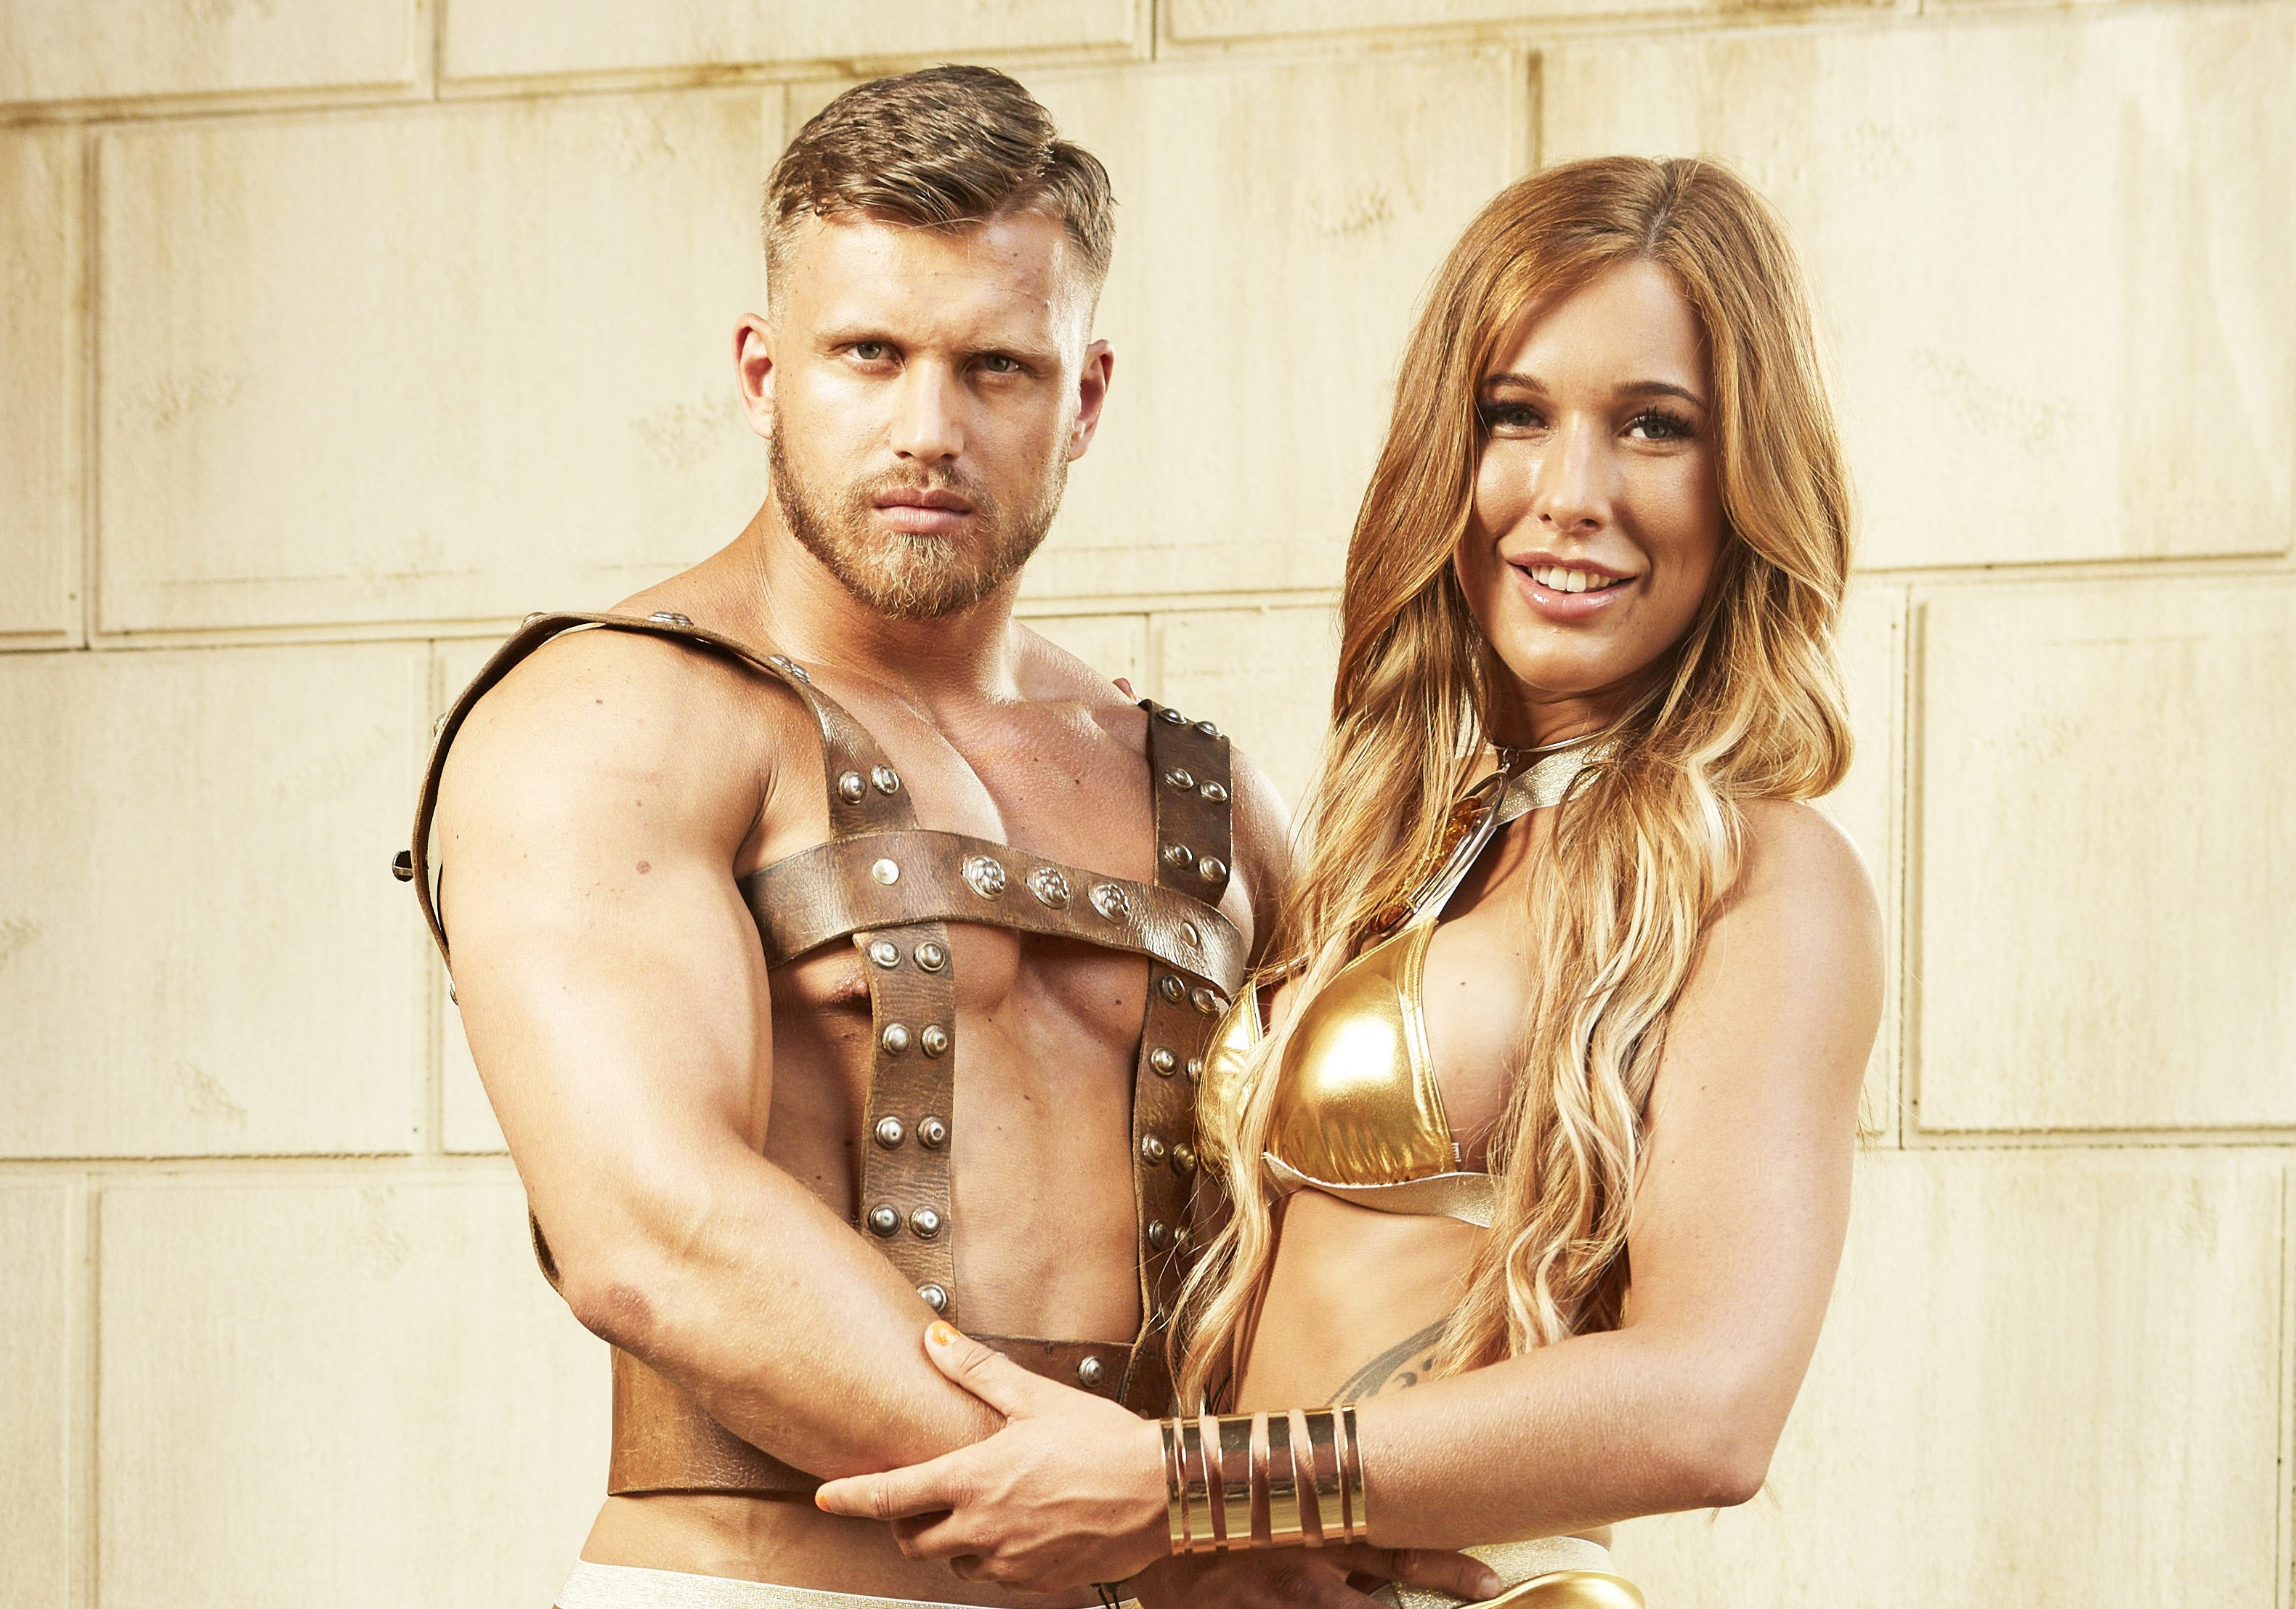 Meet the Bromans couples: Dino and Cherelle were not happy with the toilet situation